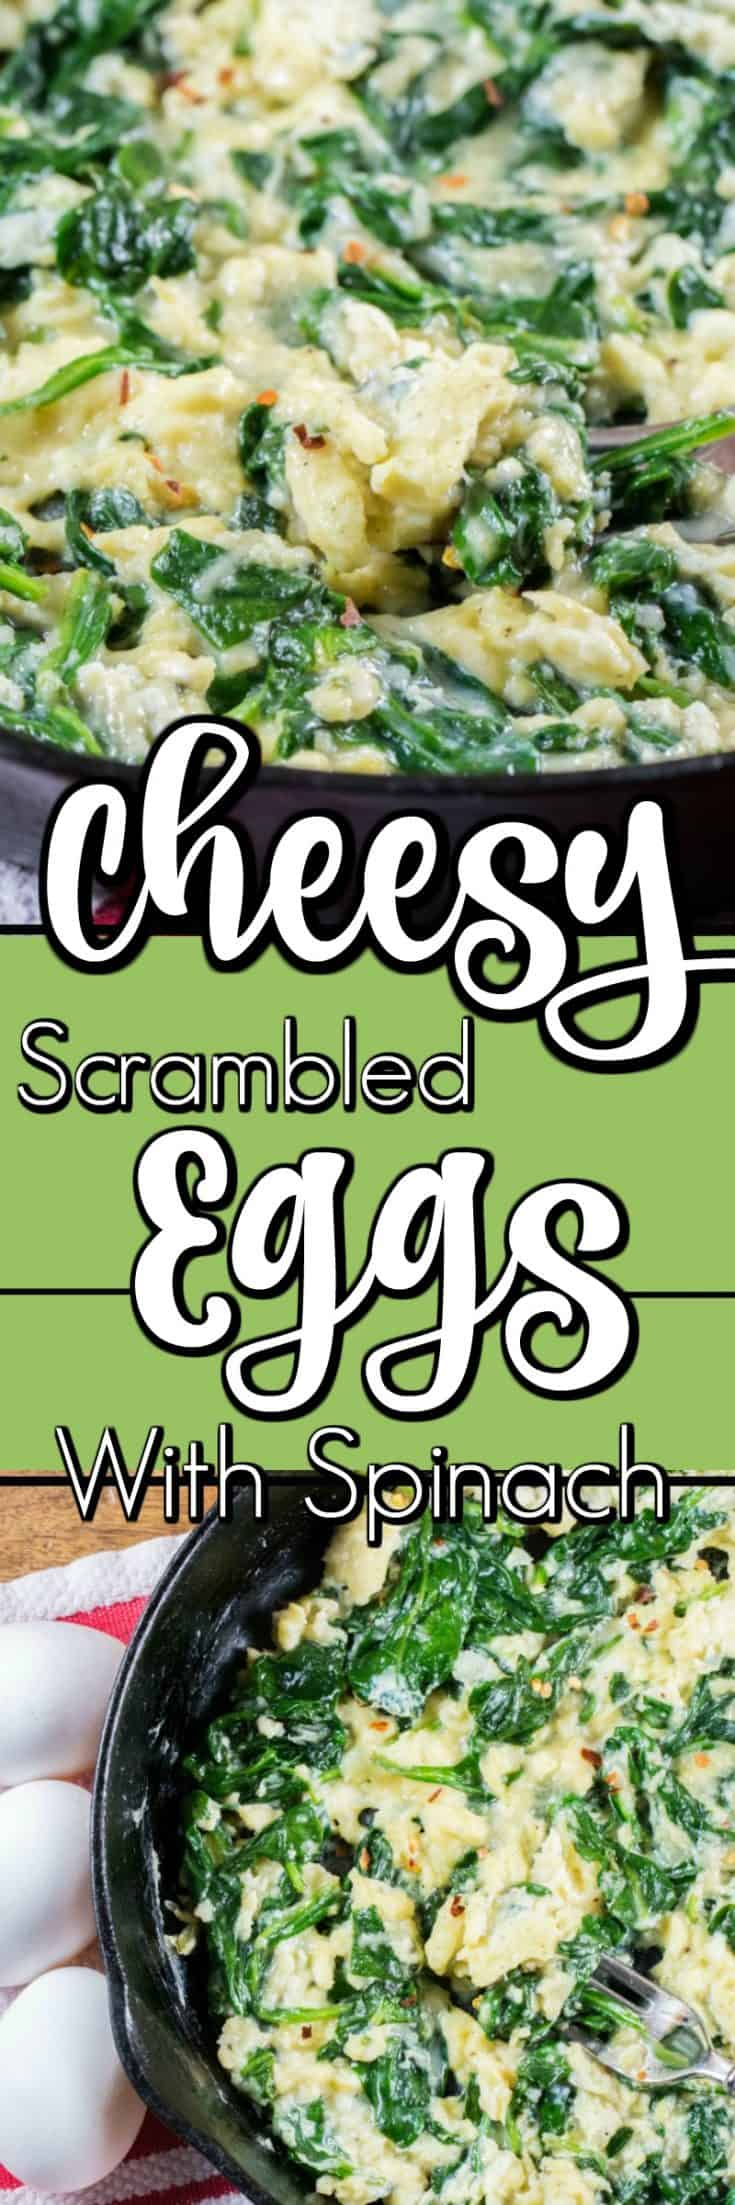 This easy meal of Cheesy Scrambled Eggs with Spinach is short on time but big on taste. Perfect fill in meal for the holidays!! #RecipesThatGive #scrambledeggs #Spinach #Parmesan #ad